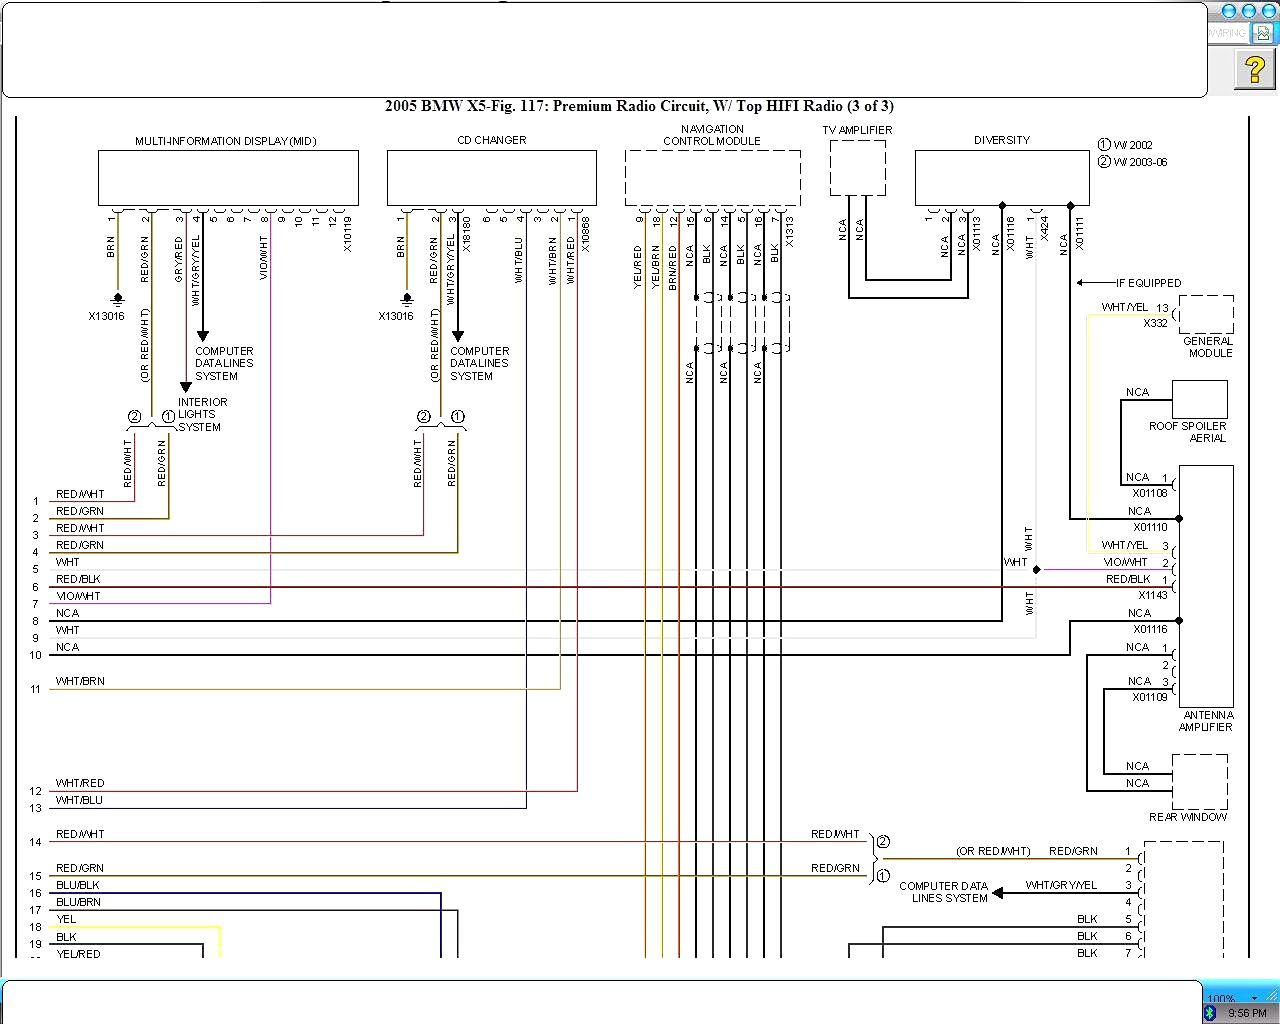 Bmw X5 Wiring Diagram - Dandim Mohammedshrine Wiring Diagrams Vs Commodore Air Conditioning Wiring Diagram on air conditioning symbols, air conditioning repair, air conditioning drain line clog, air conditioning wire colors, air compressor wiring diagram, double pole double throw relay diagrams, air conditioning flow diagram, air conditioning maintenance, air handler to heat pump wiring, air conditioning units, air conditioning diagnostics, air conditioning systems, air conditioning air handler prices, ceiling fans diagrams, air conditioning parts list, air conditioning compressor, air conditioning funny sayings, air conditioner circuit breaker wiring, air conditioning schematic, hvac control system diagrams,